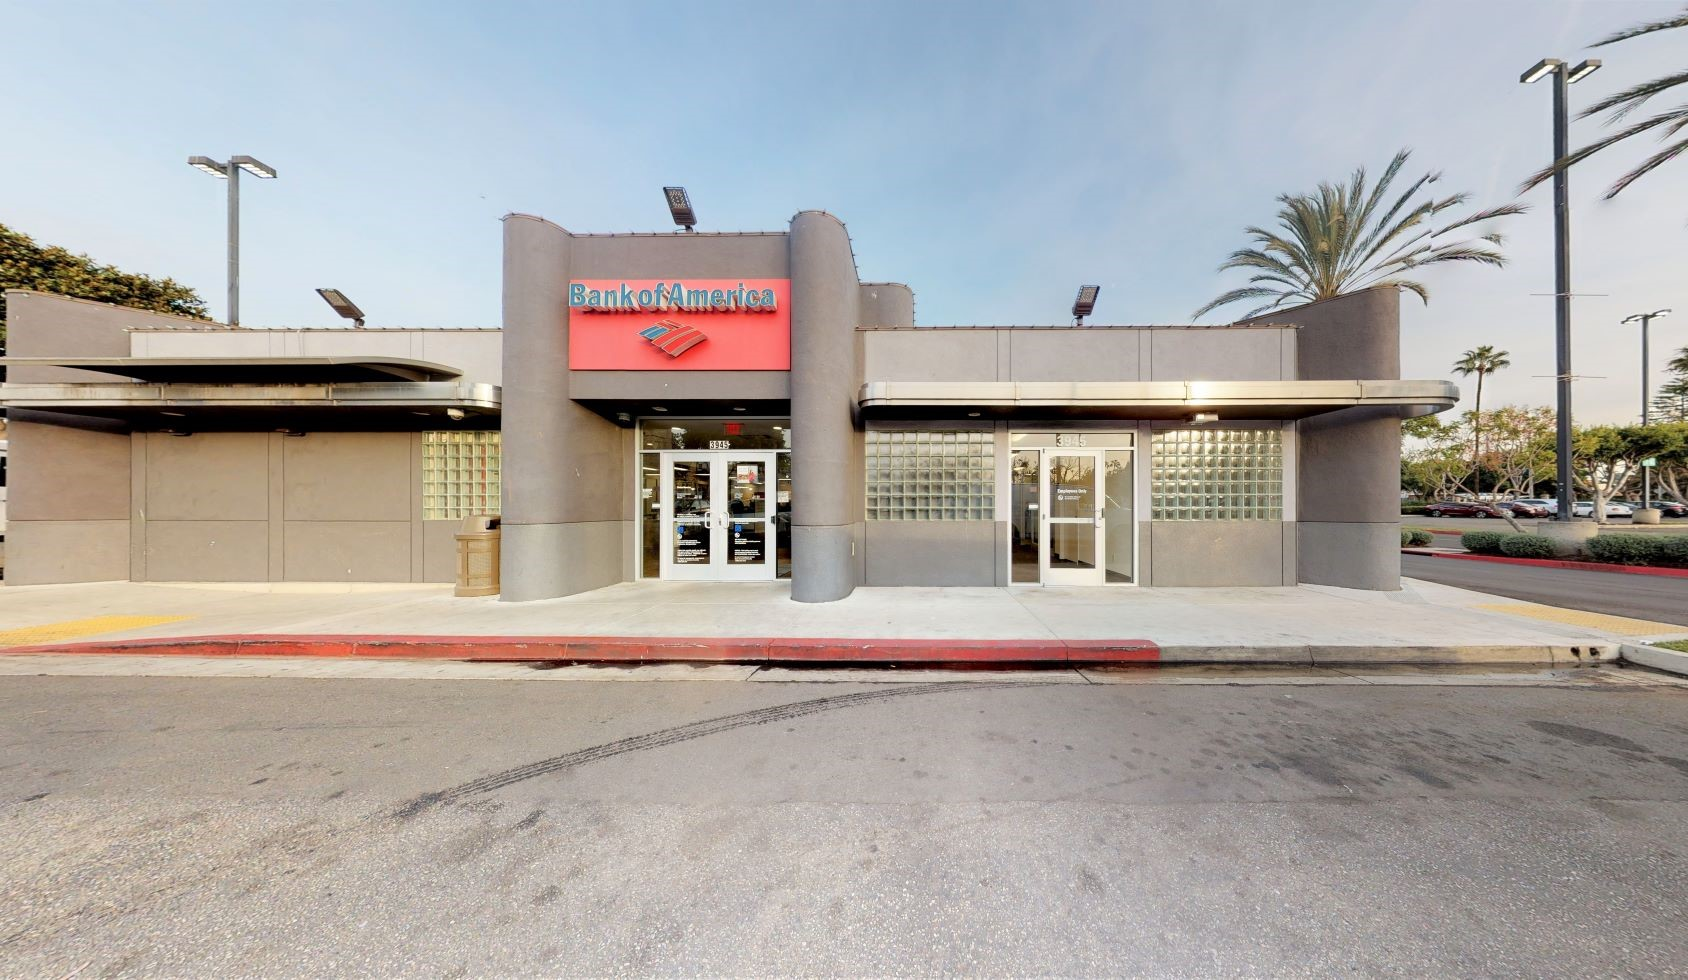 Bank of America financial center with walk-up ATM   3945 Crenshaw Blvd, Los Angeles, CA 90008